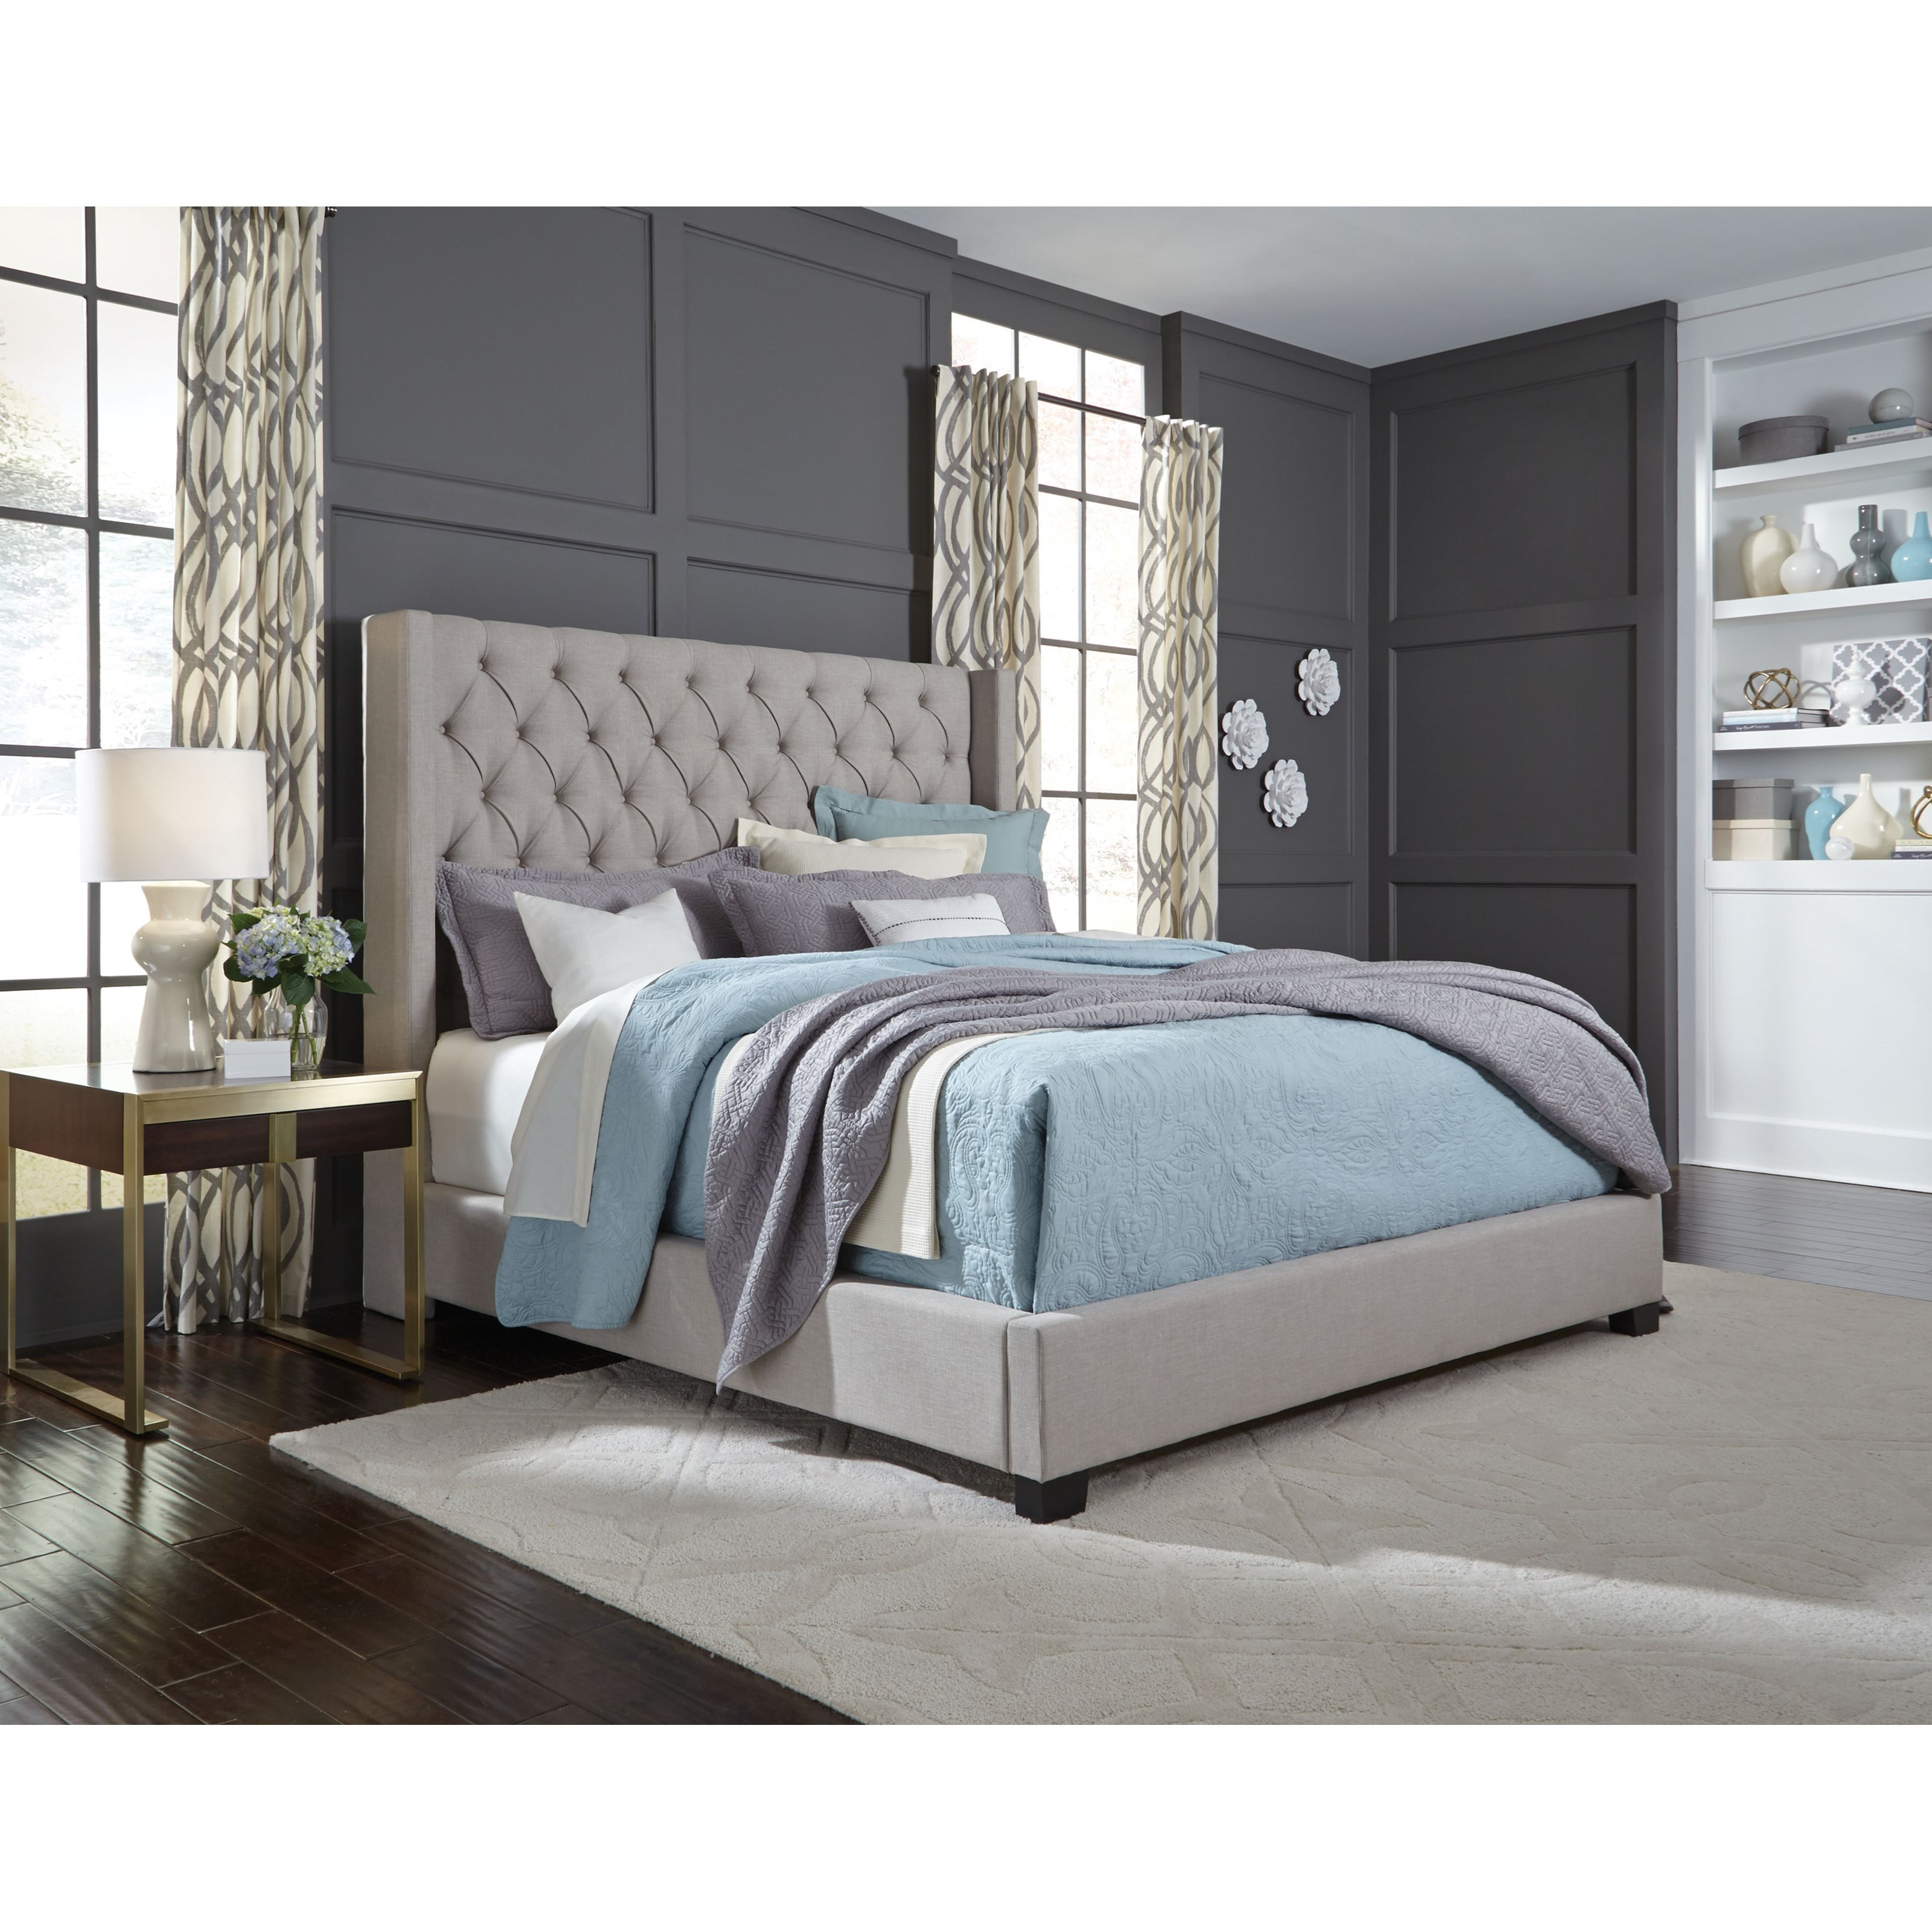 Macys Furniture Stores Locations: Standard Furniture Westerly 94271 Queen Upholstered Bed